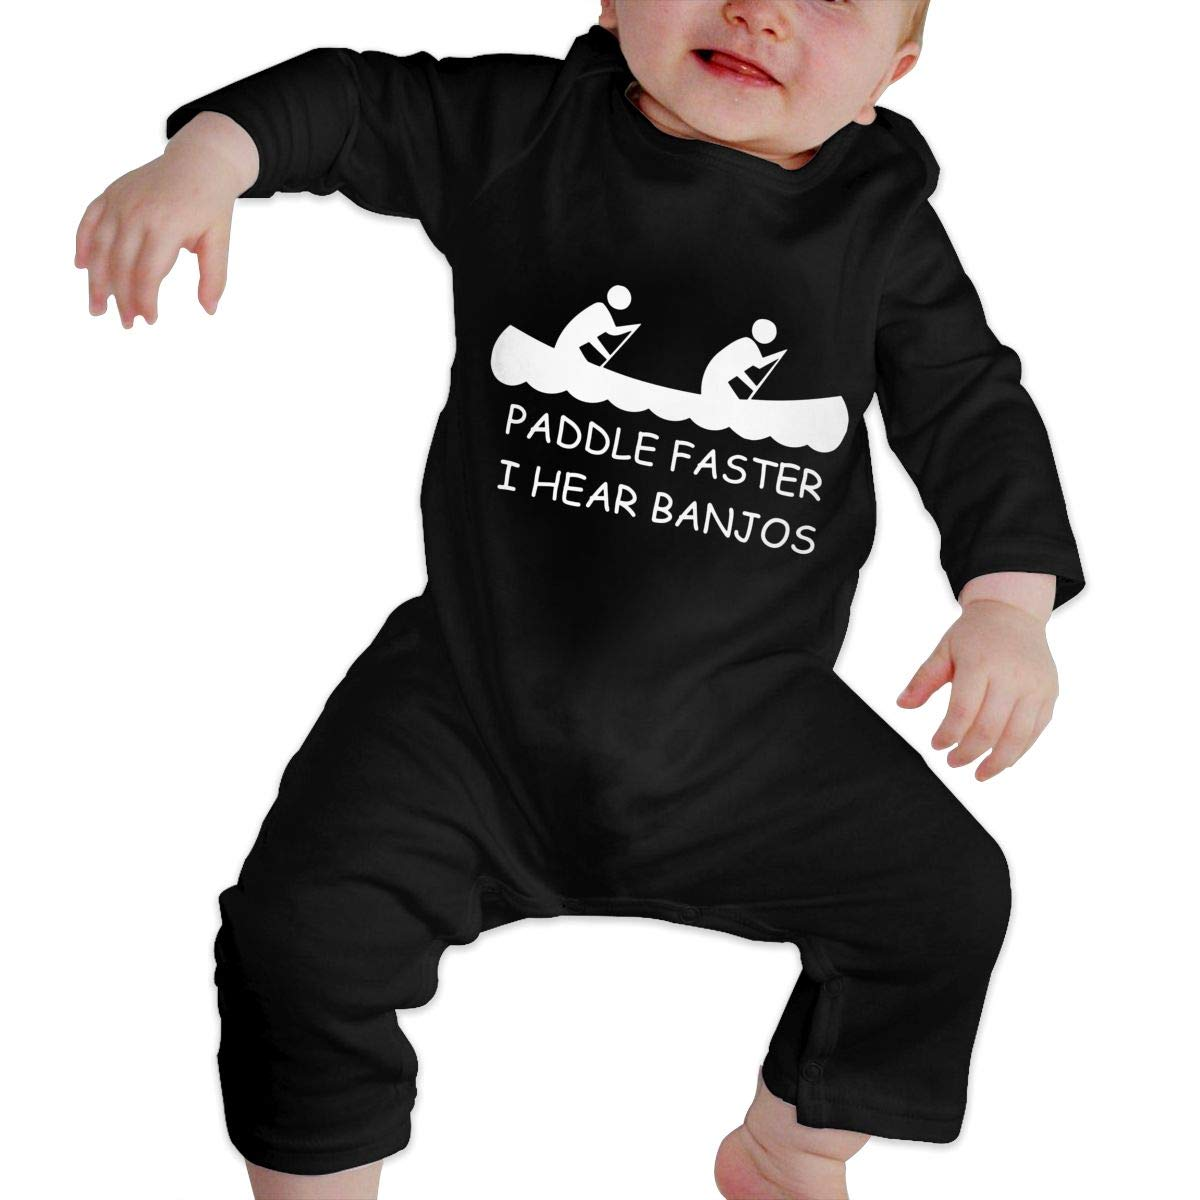 Paddle Faster I Hear Banjos Newborn Baby Boy Girl Romper Jumpsuit Long Sleeve Bodysuit Overalls Outfits Clothes